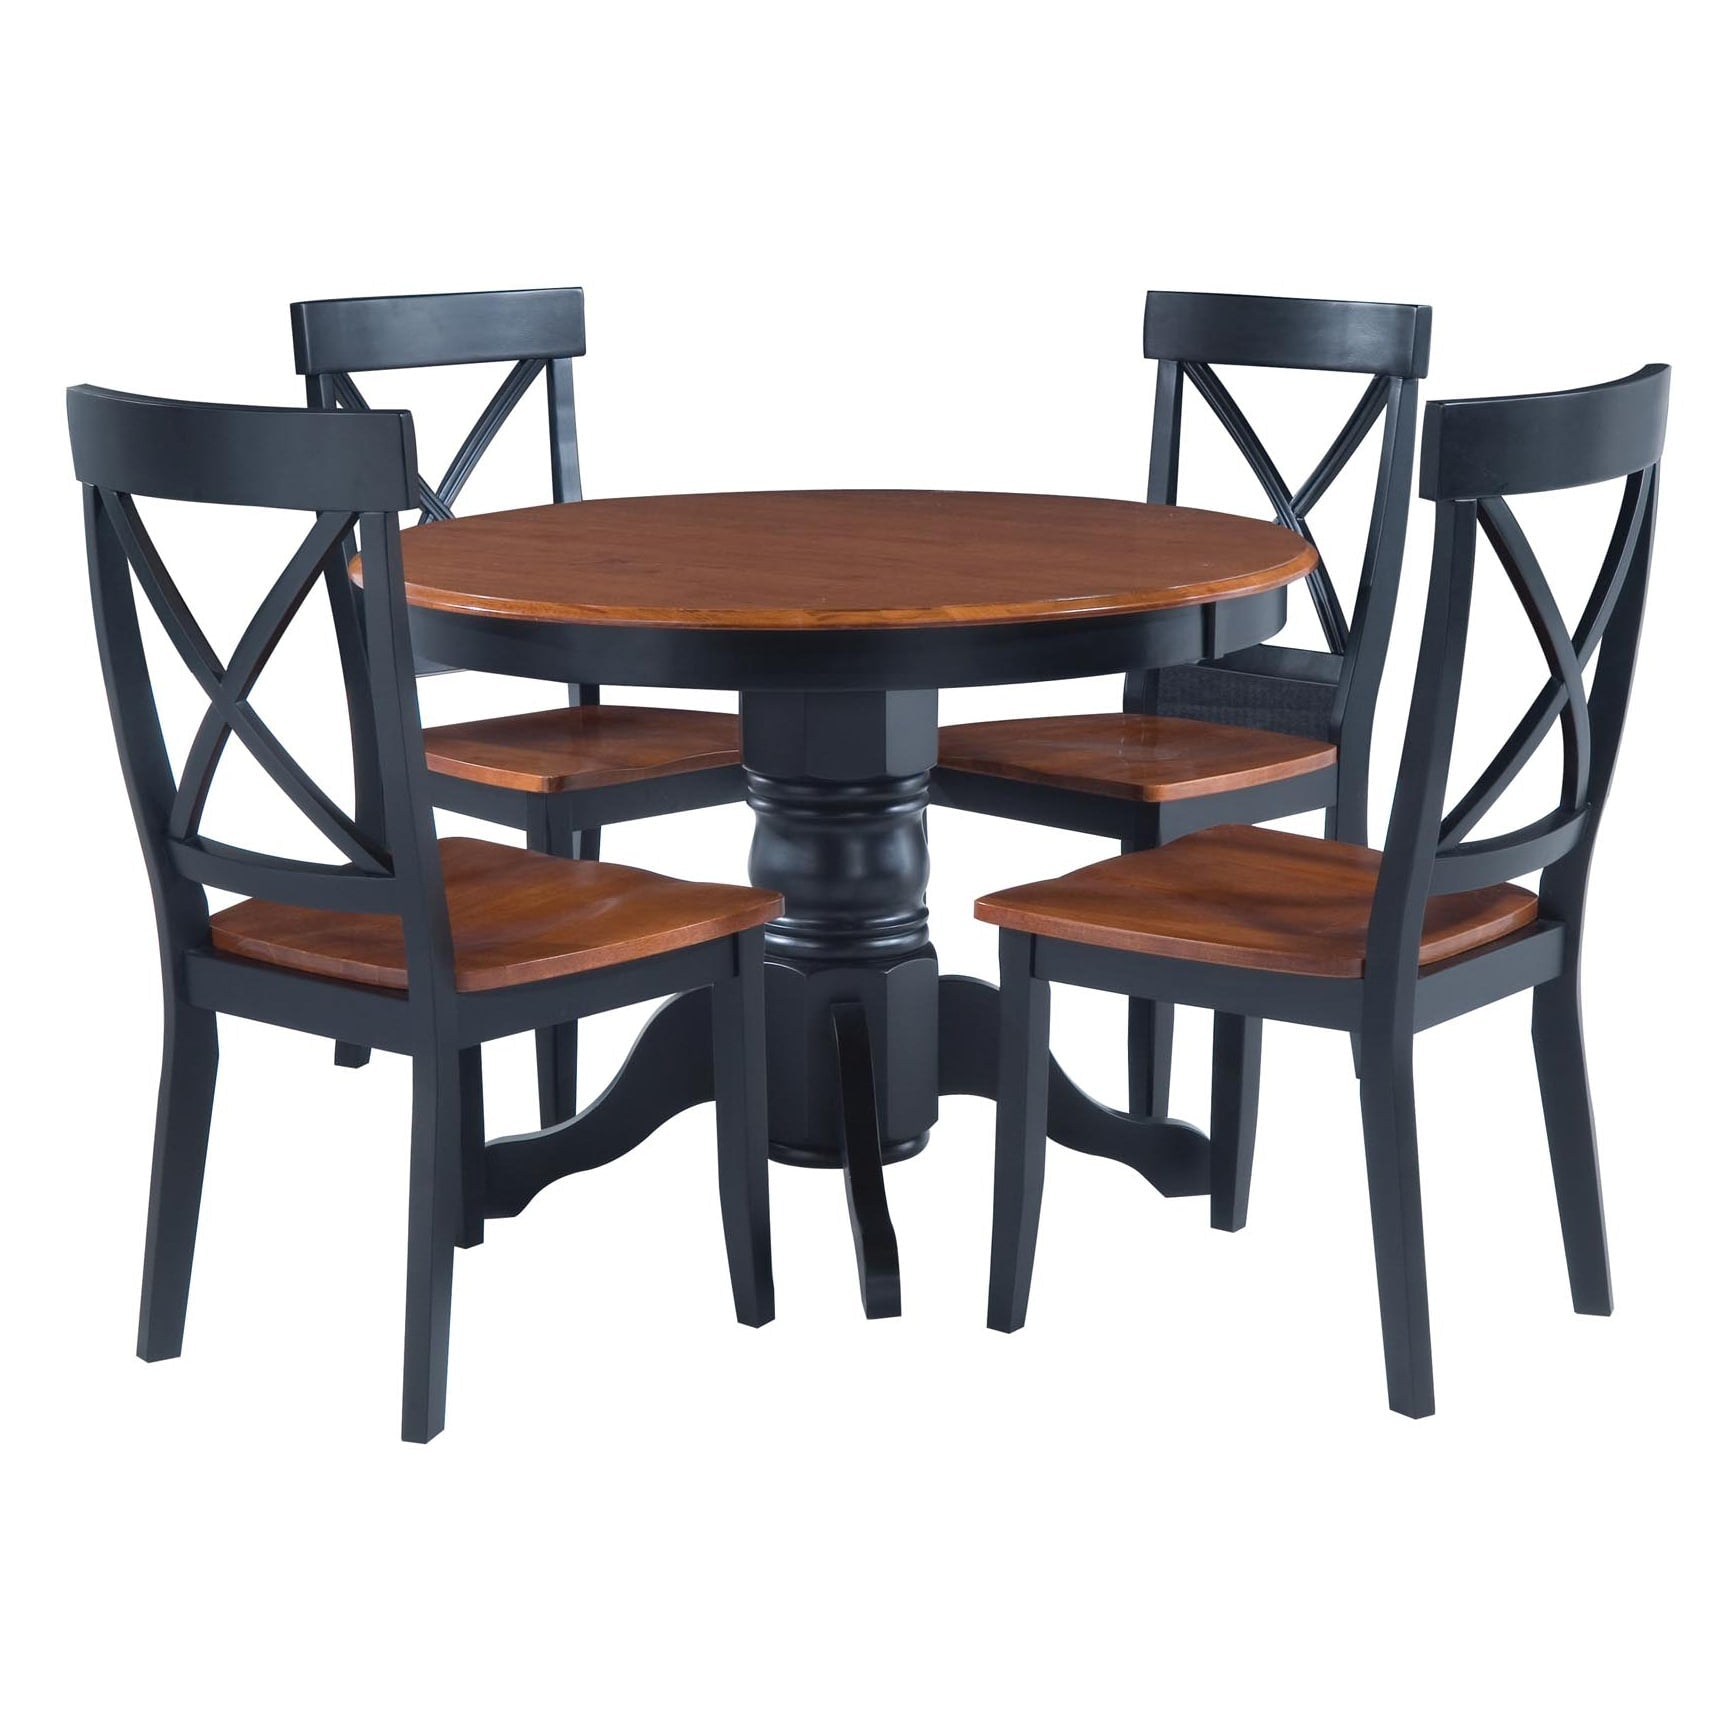 Black and Oak Five-Piece Dining Furniture Set